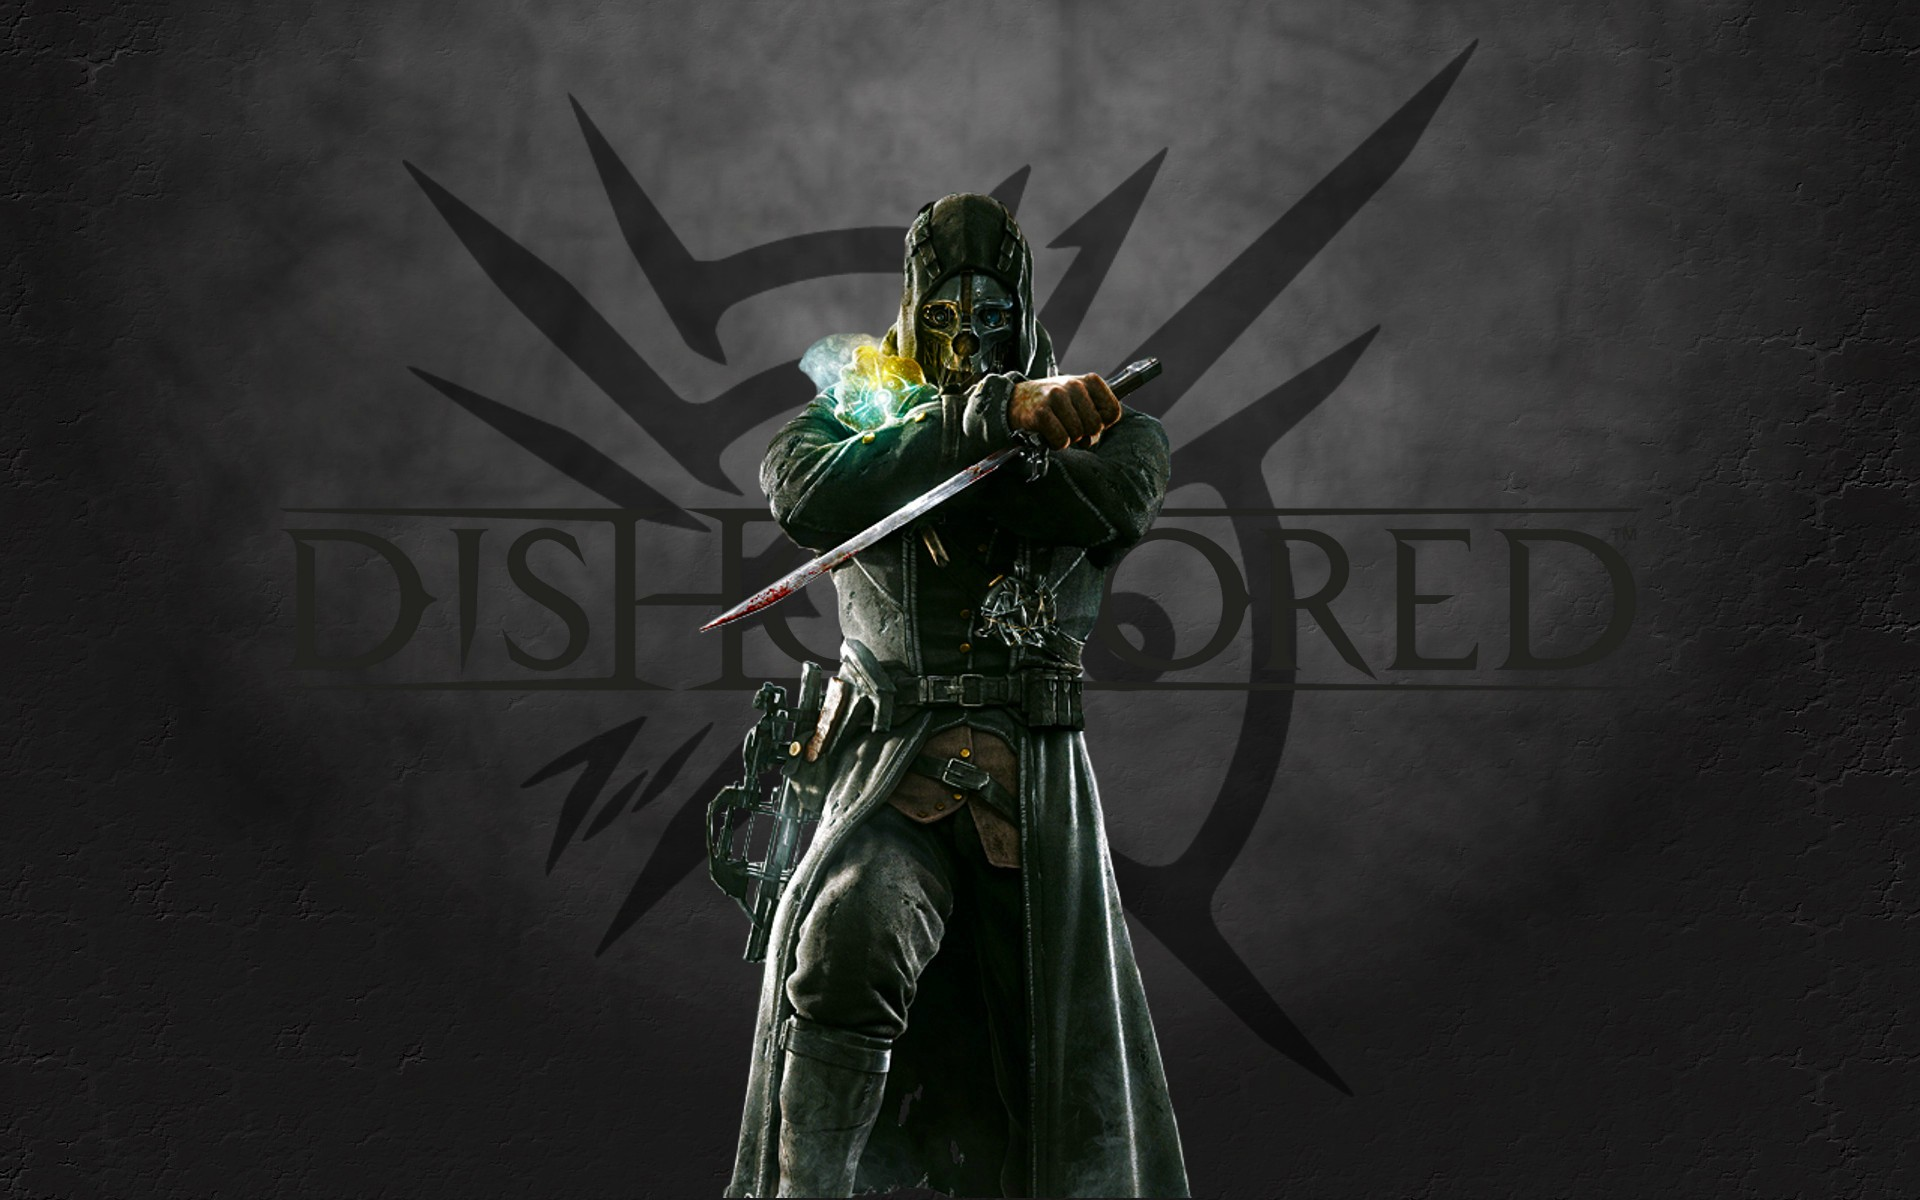 dishonored wallpapers | WallpaperUP